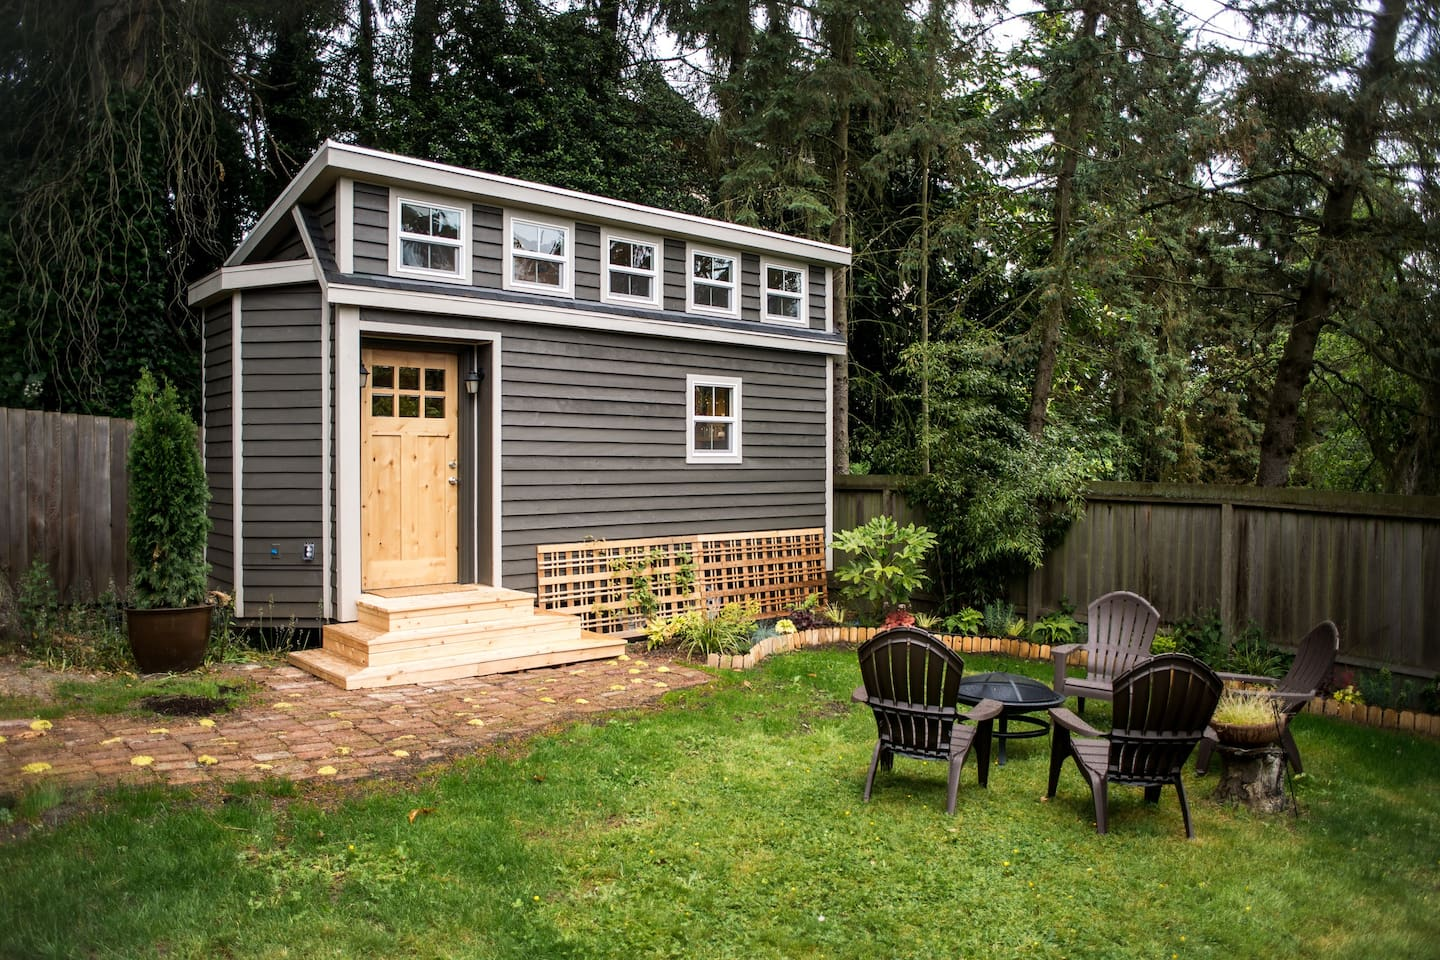 Enjoyable 8 Tiny Homes You Can Rent Right Now Curbed Largest Home Design Picture Inspirations Pitcheantrous